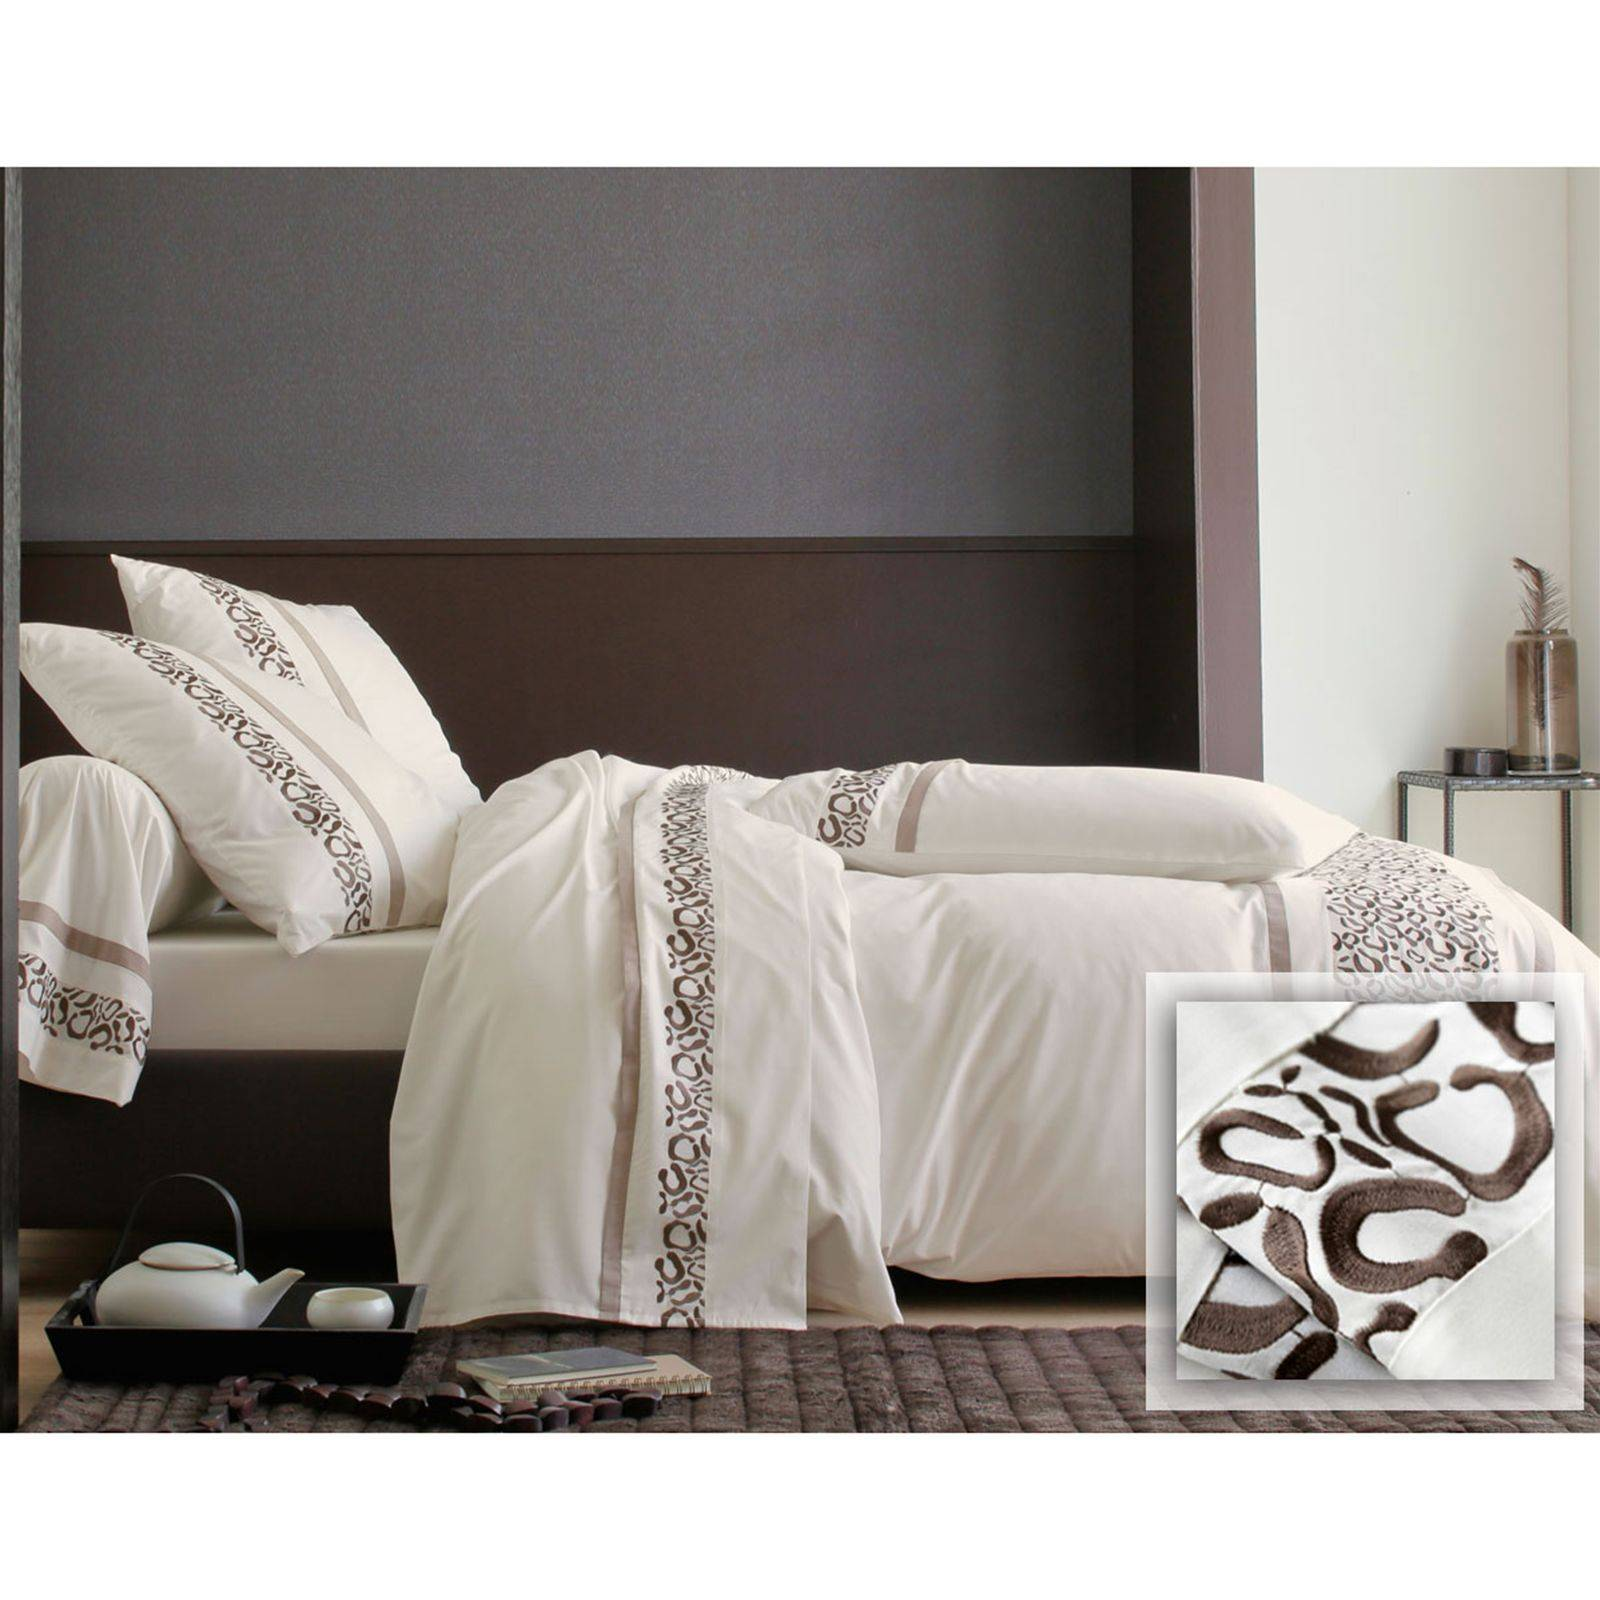 becquet housse de couette percale motif l opard brod cr me brandalley. Black Bedroom Furniture Sets. Home Design Ideas